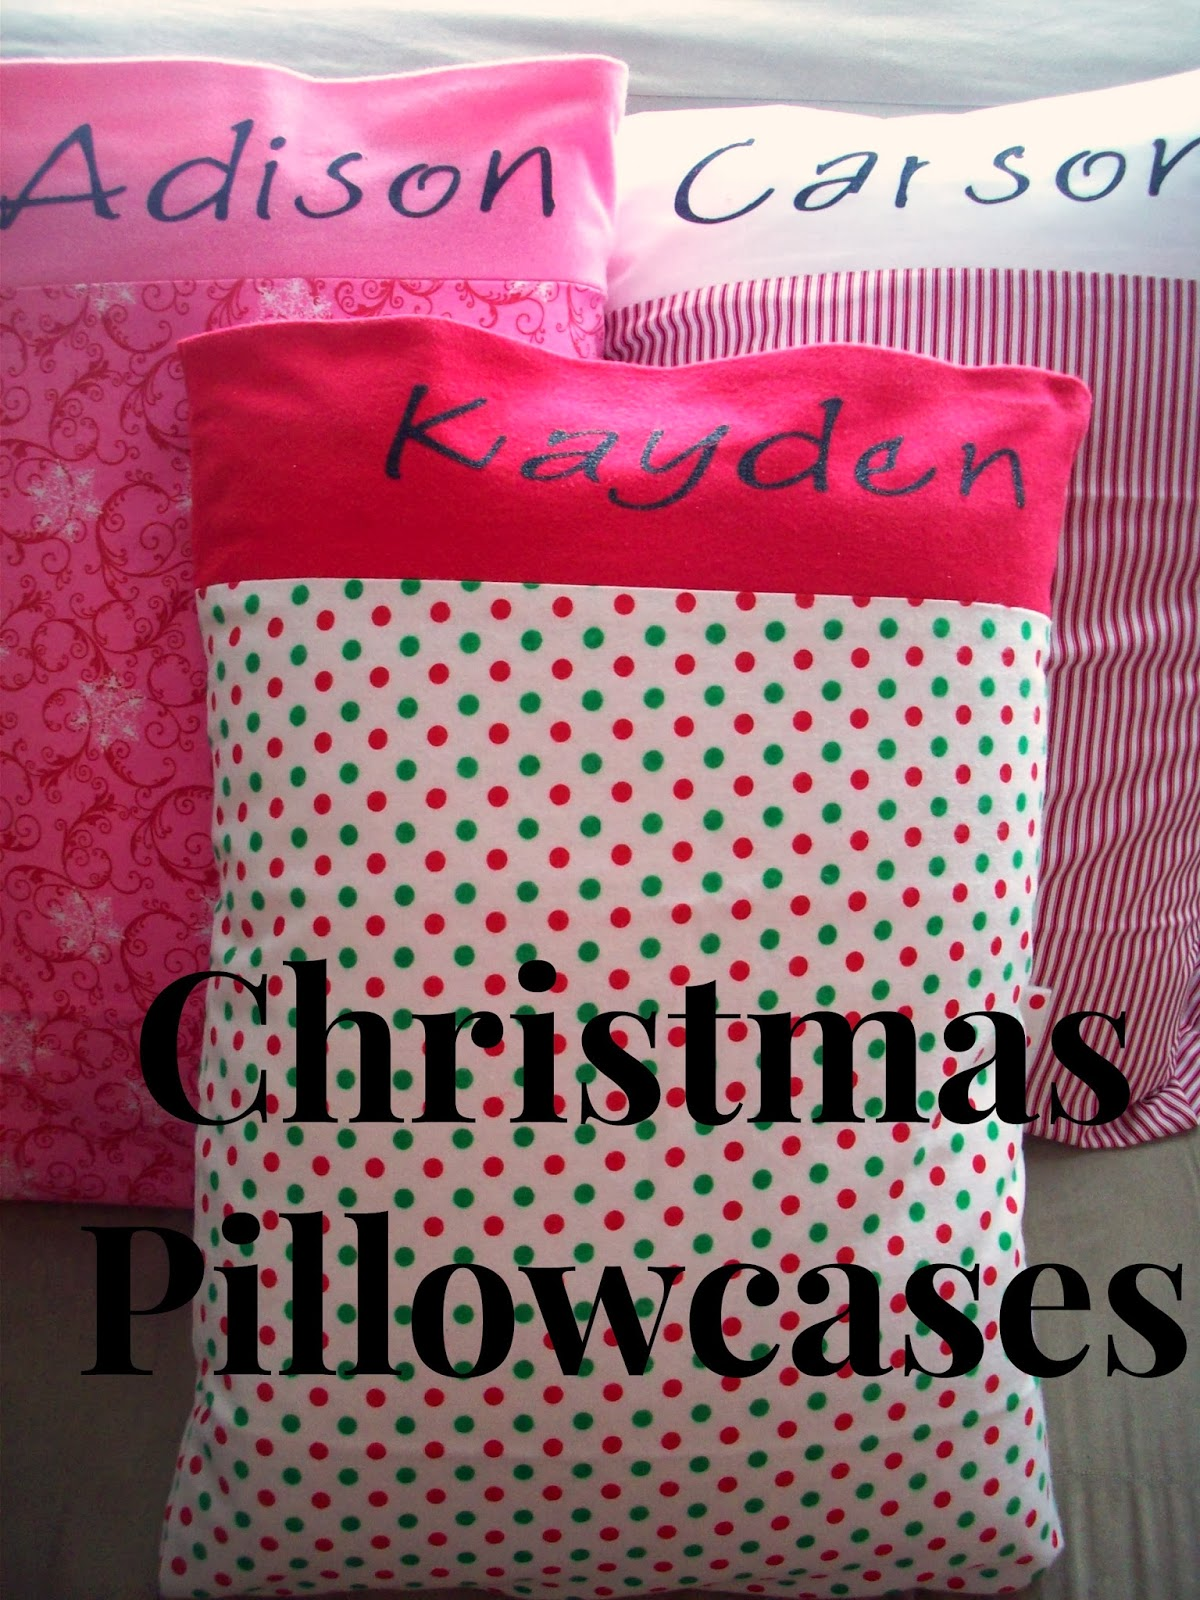 Pillowcases With Glitter Iron On Vinyl Food Crafts And